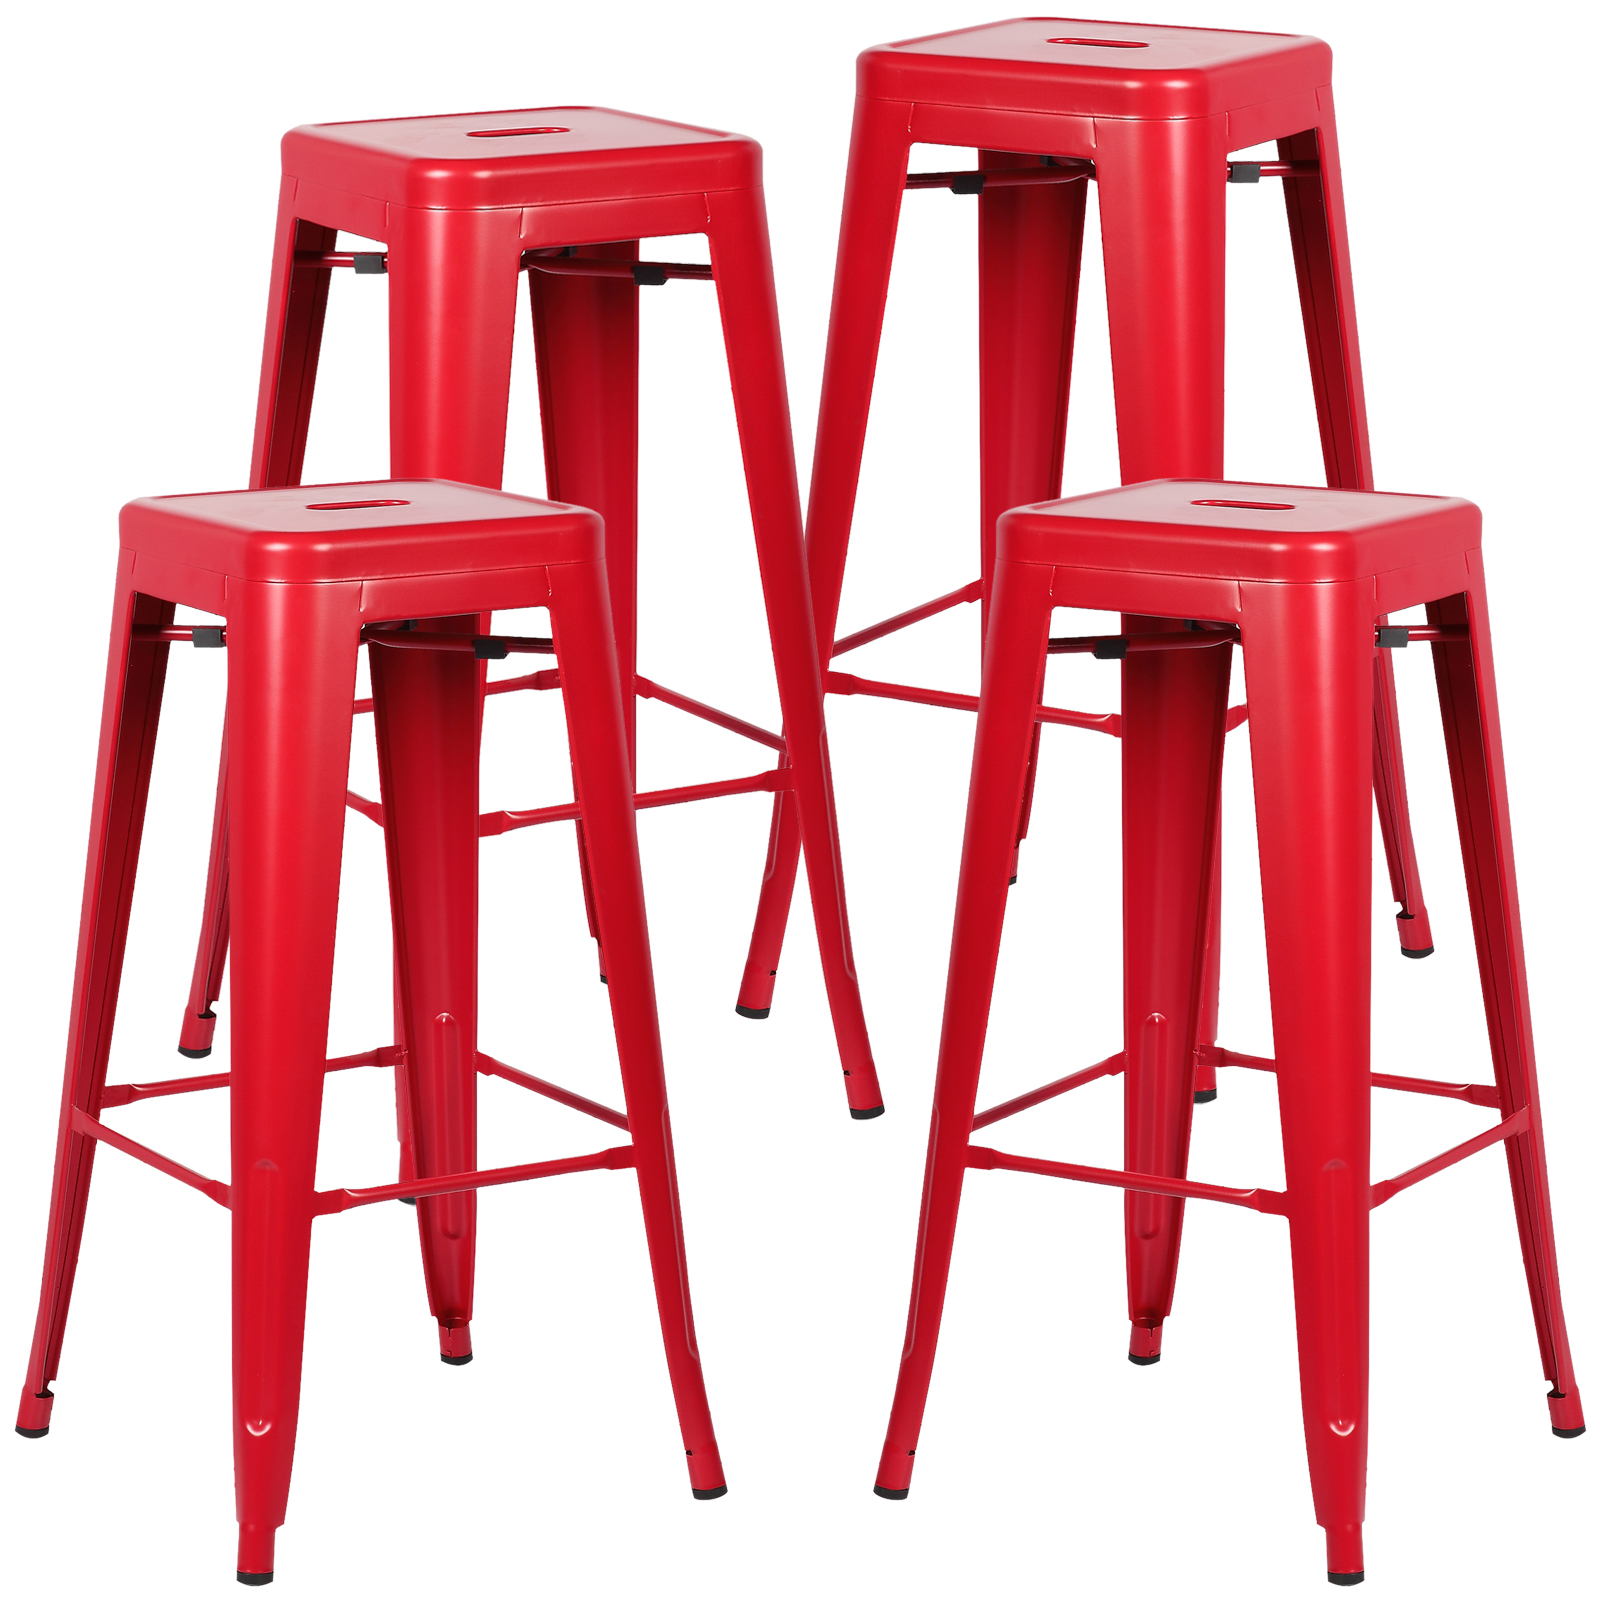 Poly and Bark Trattoria Bar Stool in Red (Set of 4) by Poly and Bark